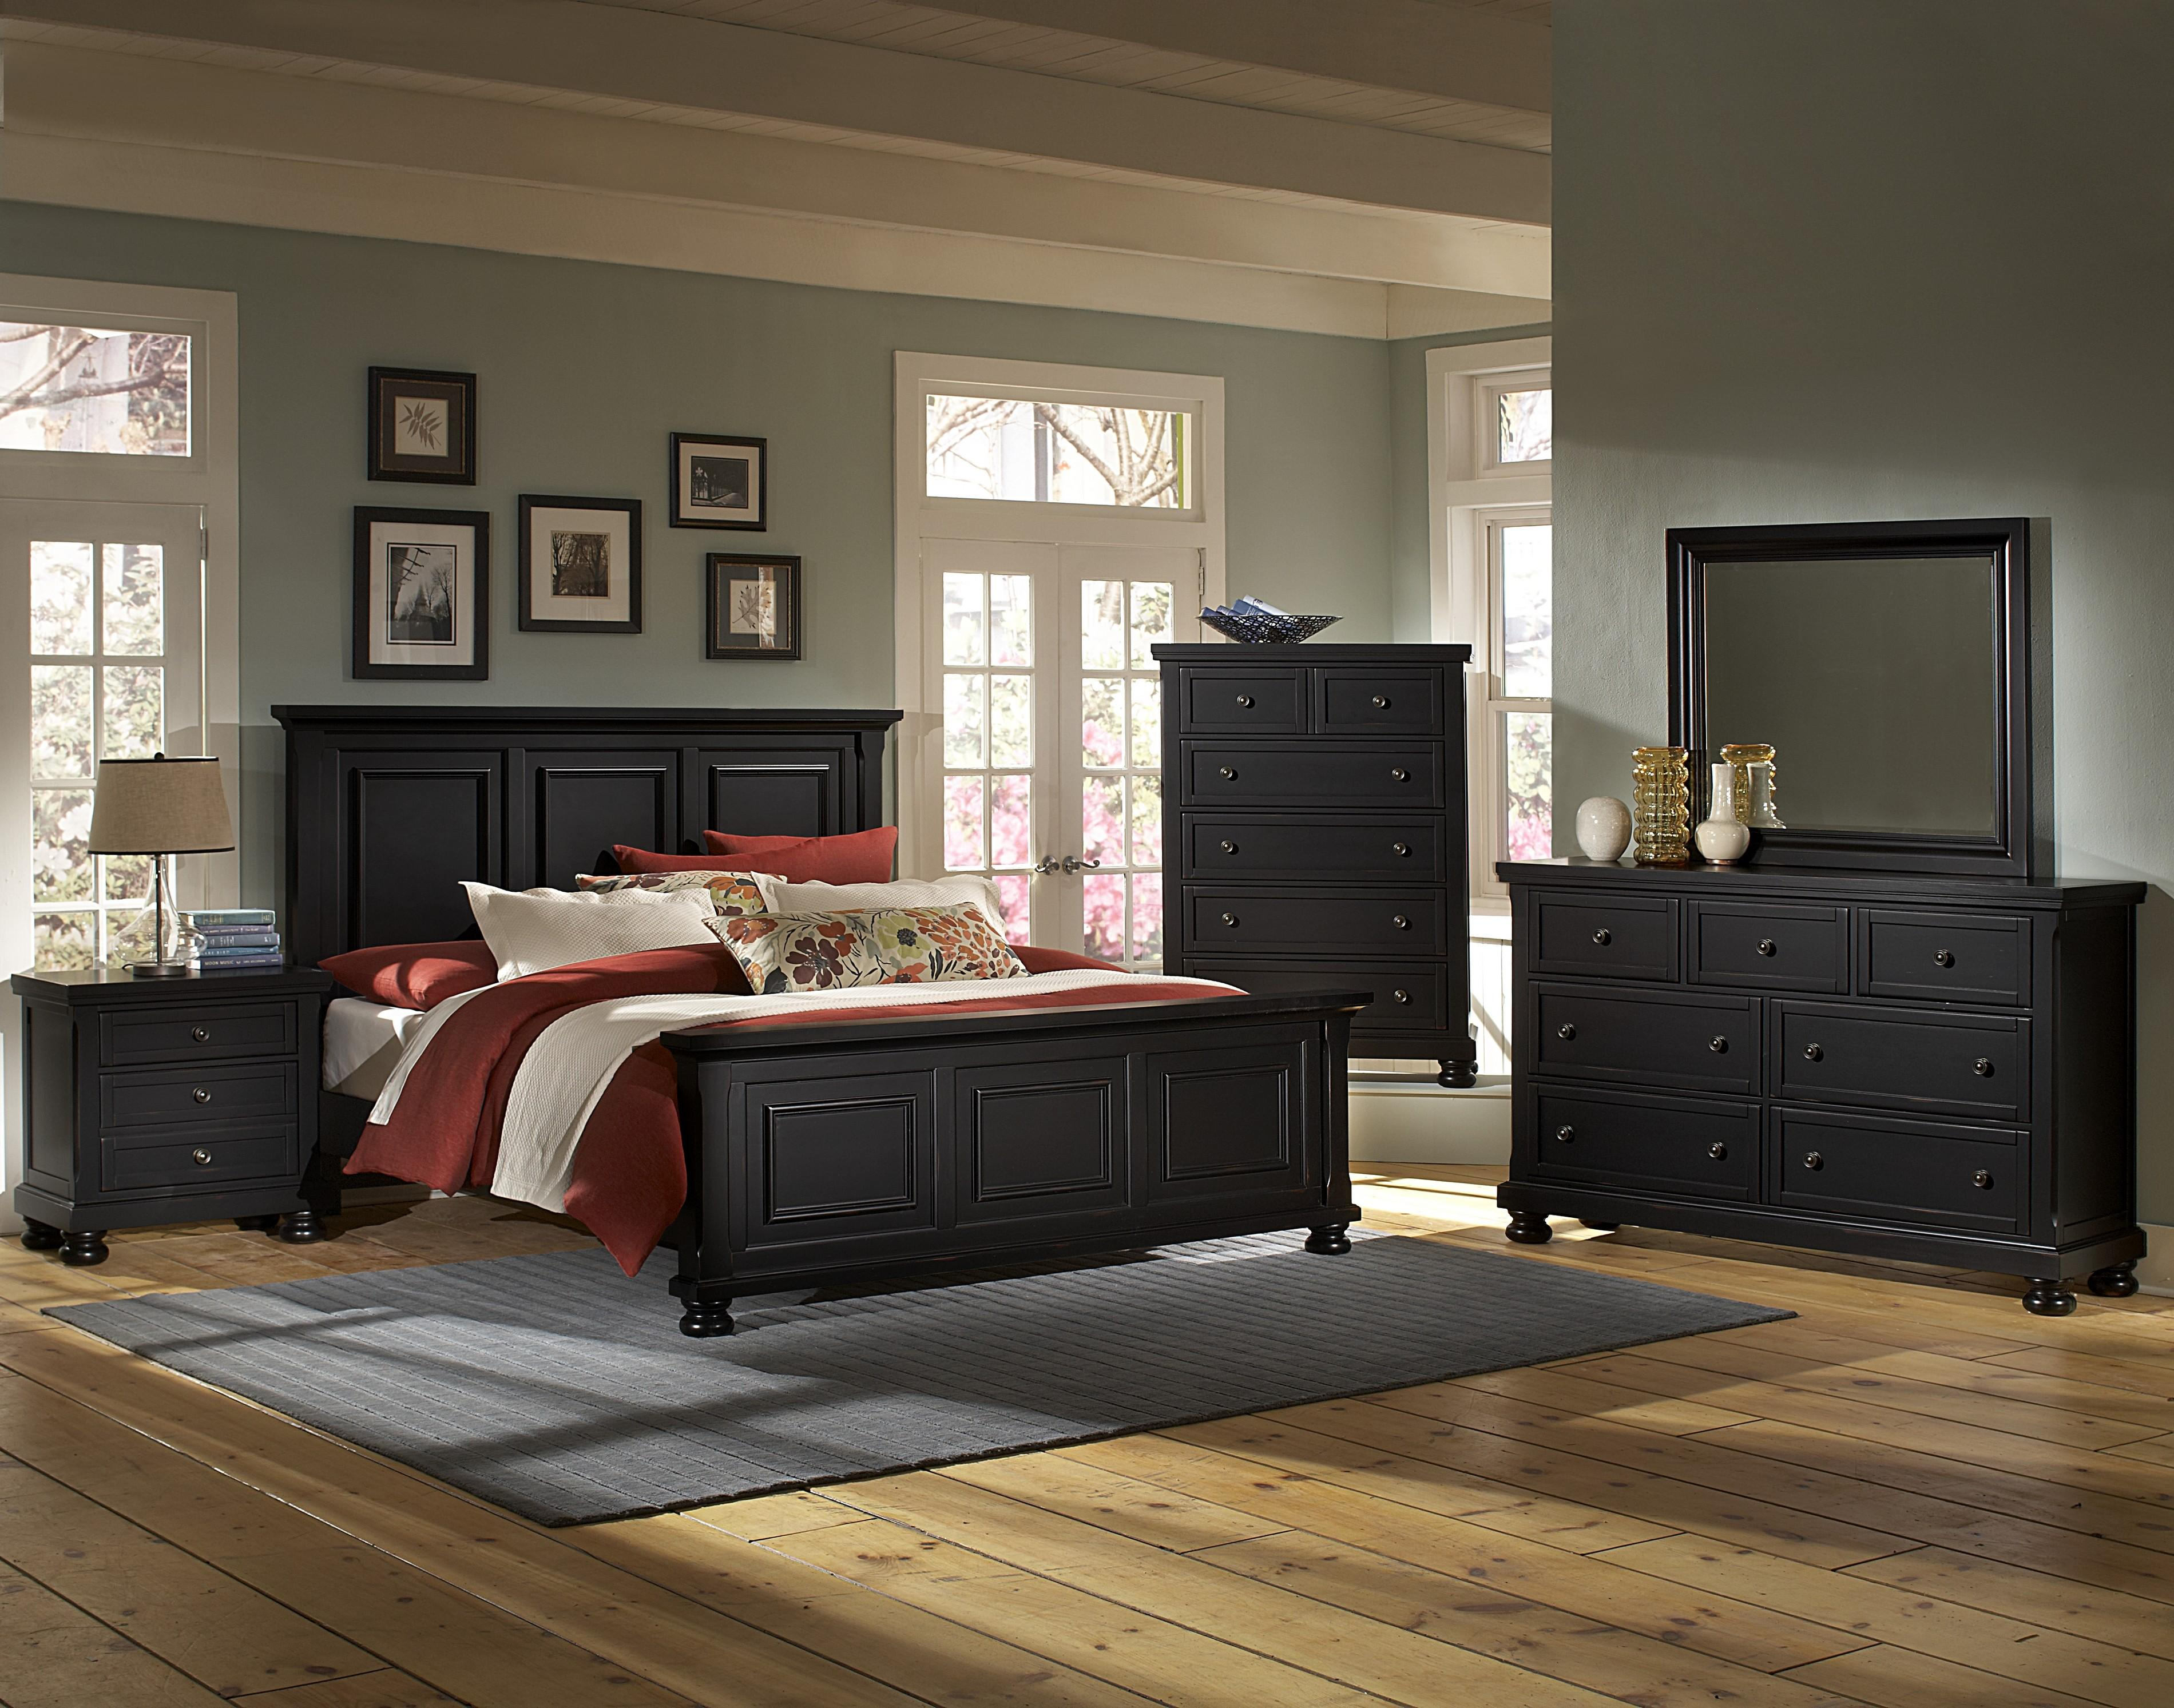 Vaughan Bassett Reflections Queen Bedroom Group - Item Number: 534 Q Bedroom Group 2